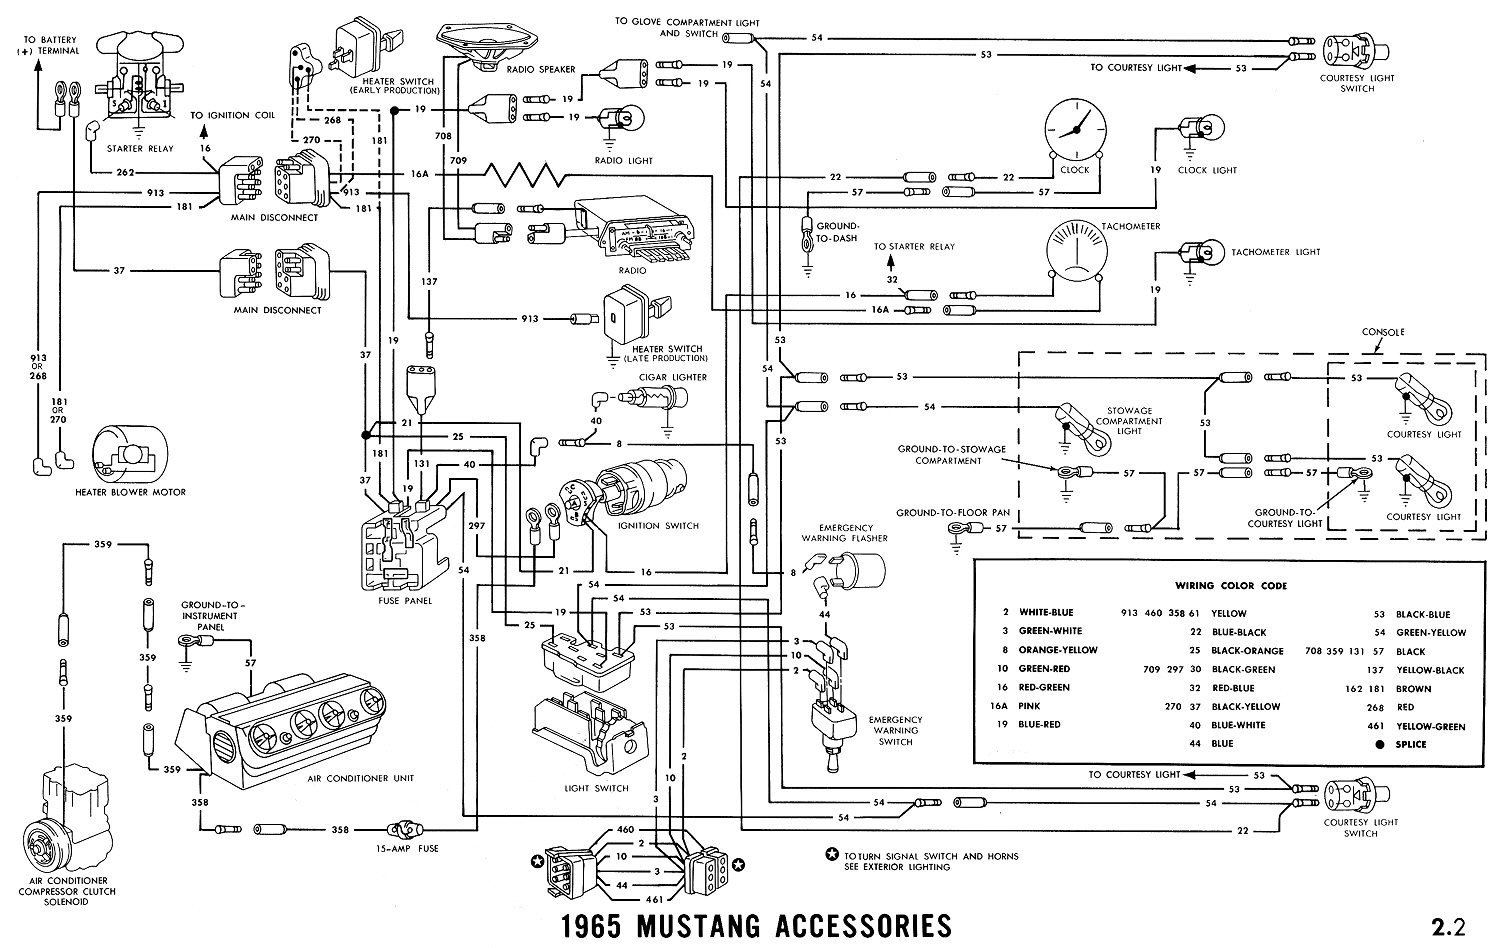 1965 mustang wiring diagrams average joe restoration 1965 mustang radio wiring  diagram